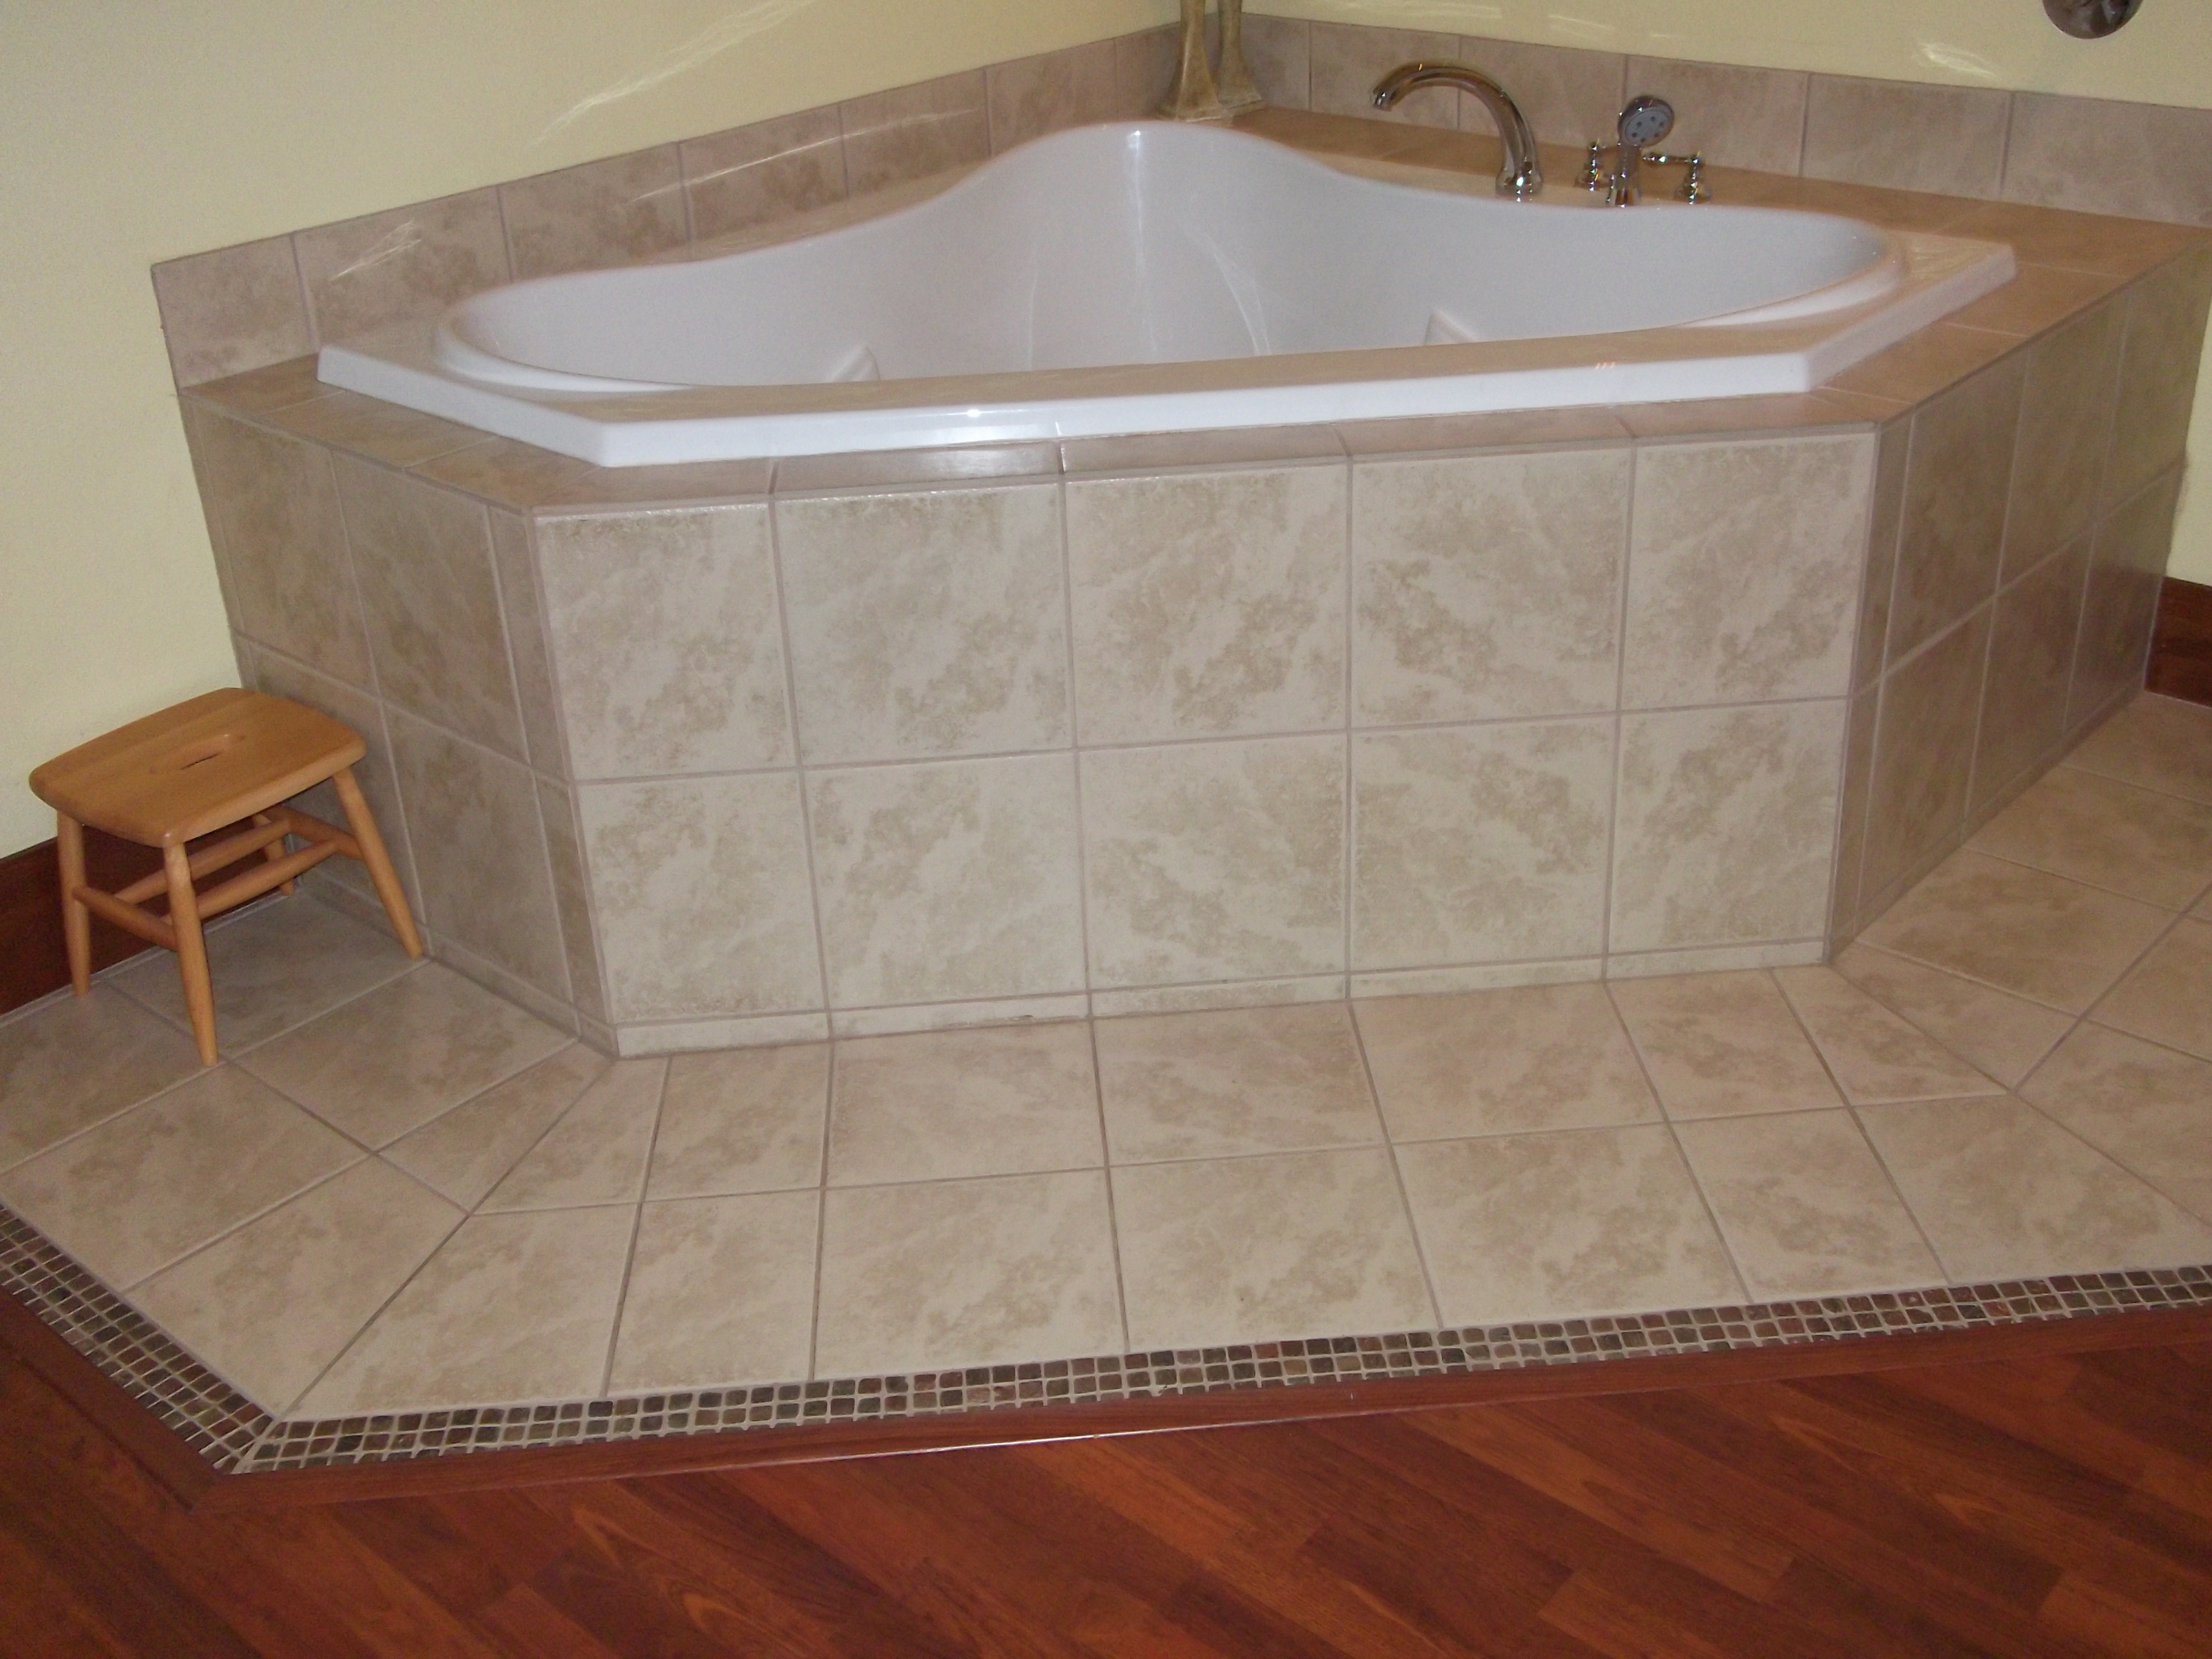 Radiant heating pros and cons for your bathroom floor angies list home design idea - Radiant floor heating pros and cons ...